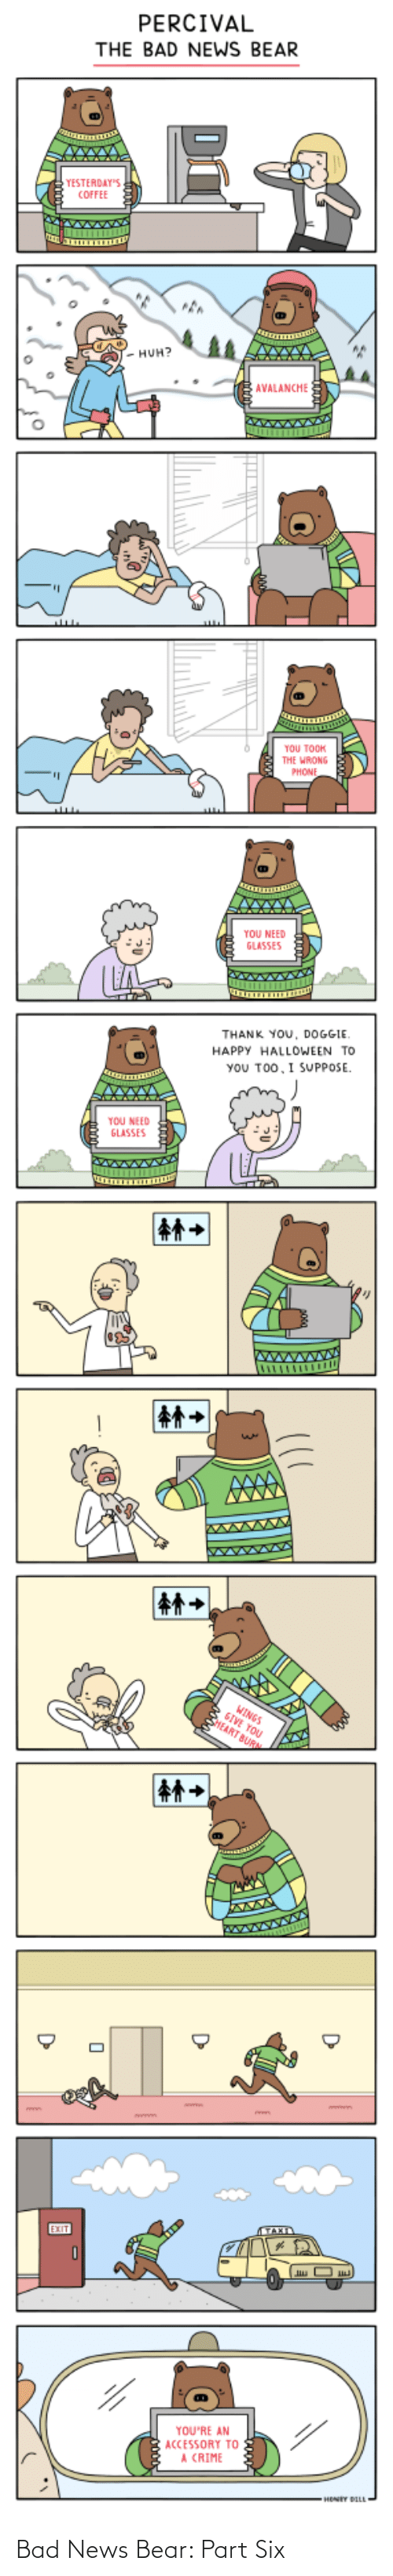 Part: Bad News Bear: Part Six